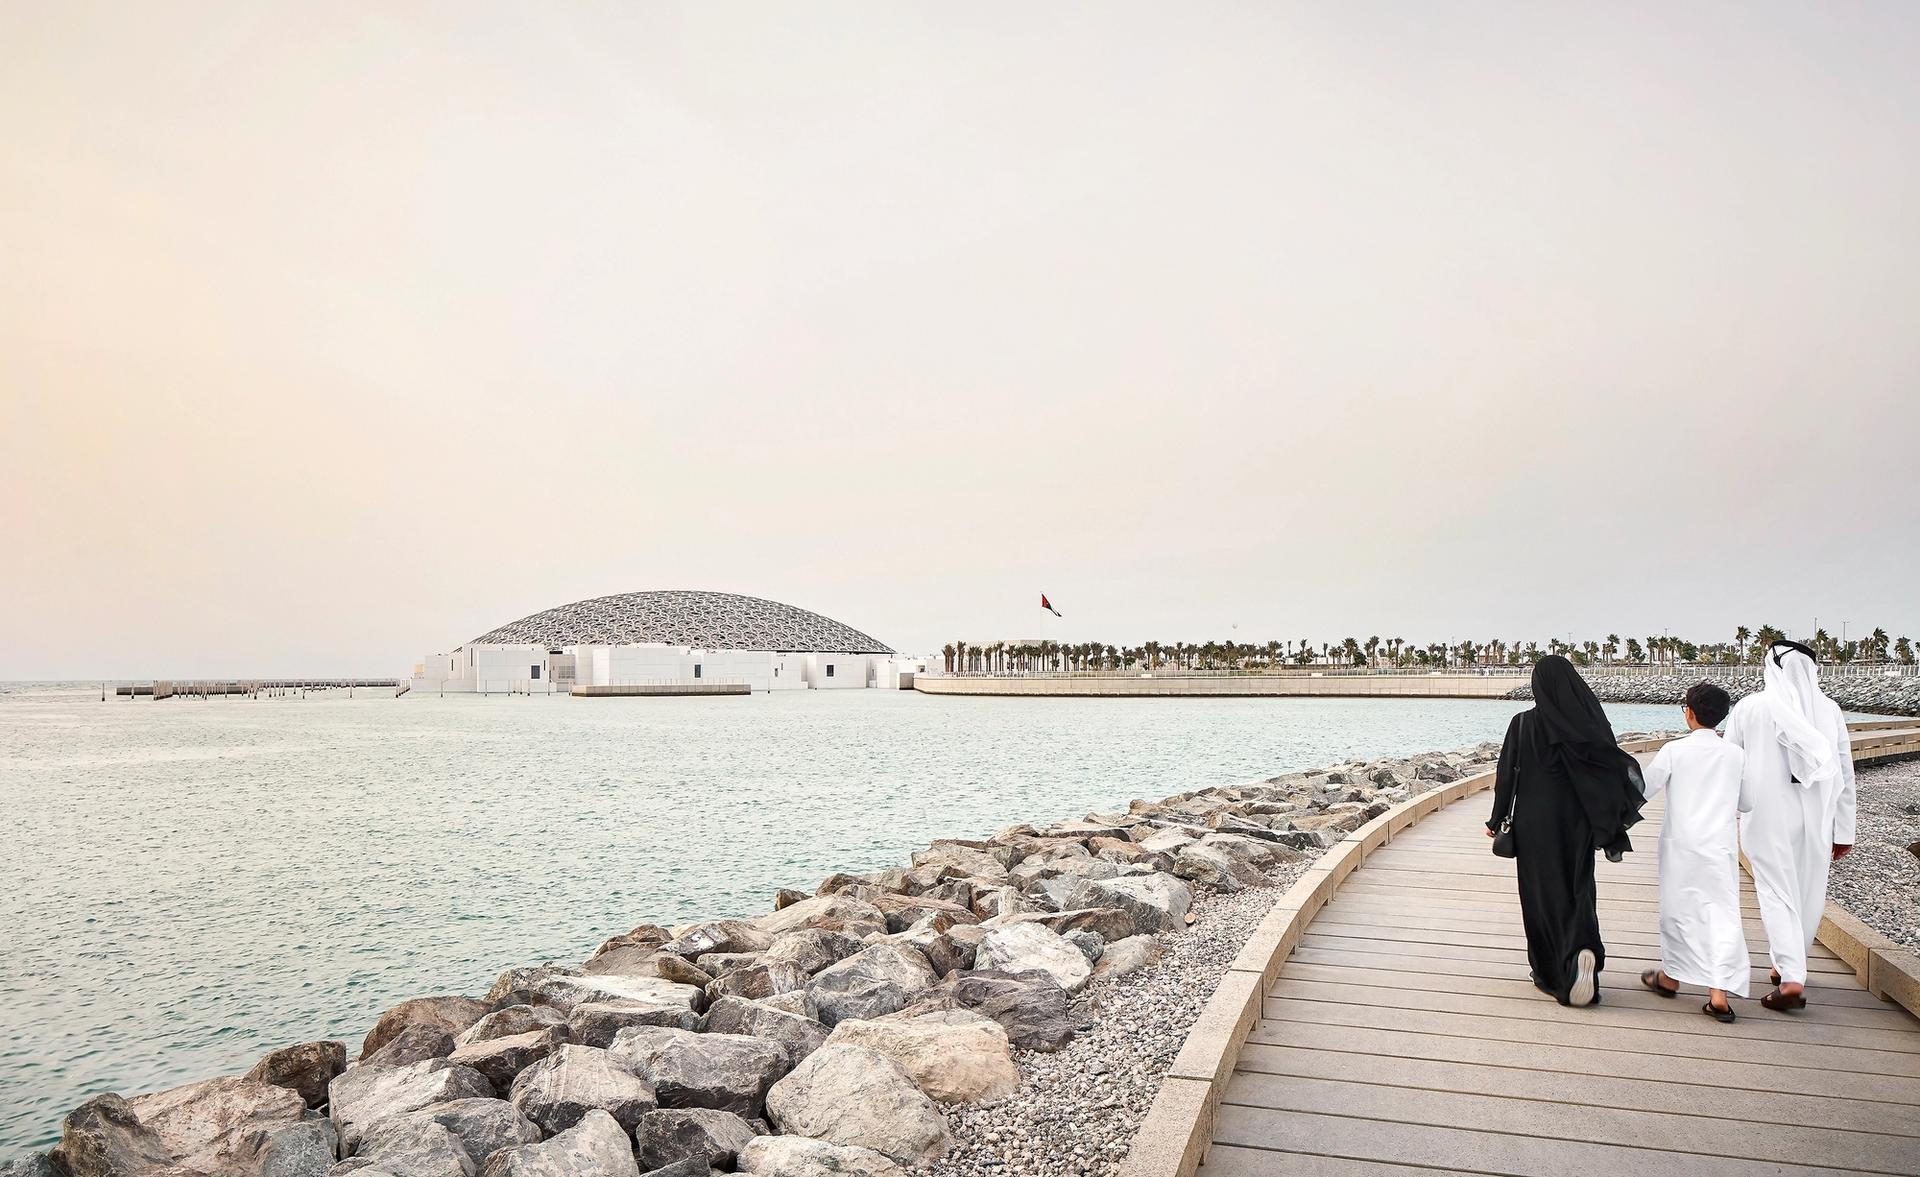 The Louvre Abu Dhabi ©Department of Culture and Tourism – Abu Dhabi / Photo by Hufton + Crow